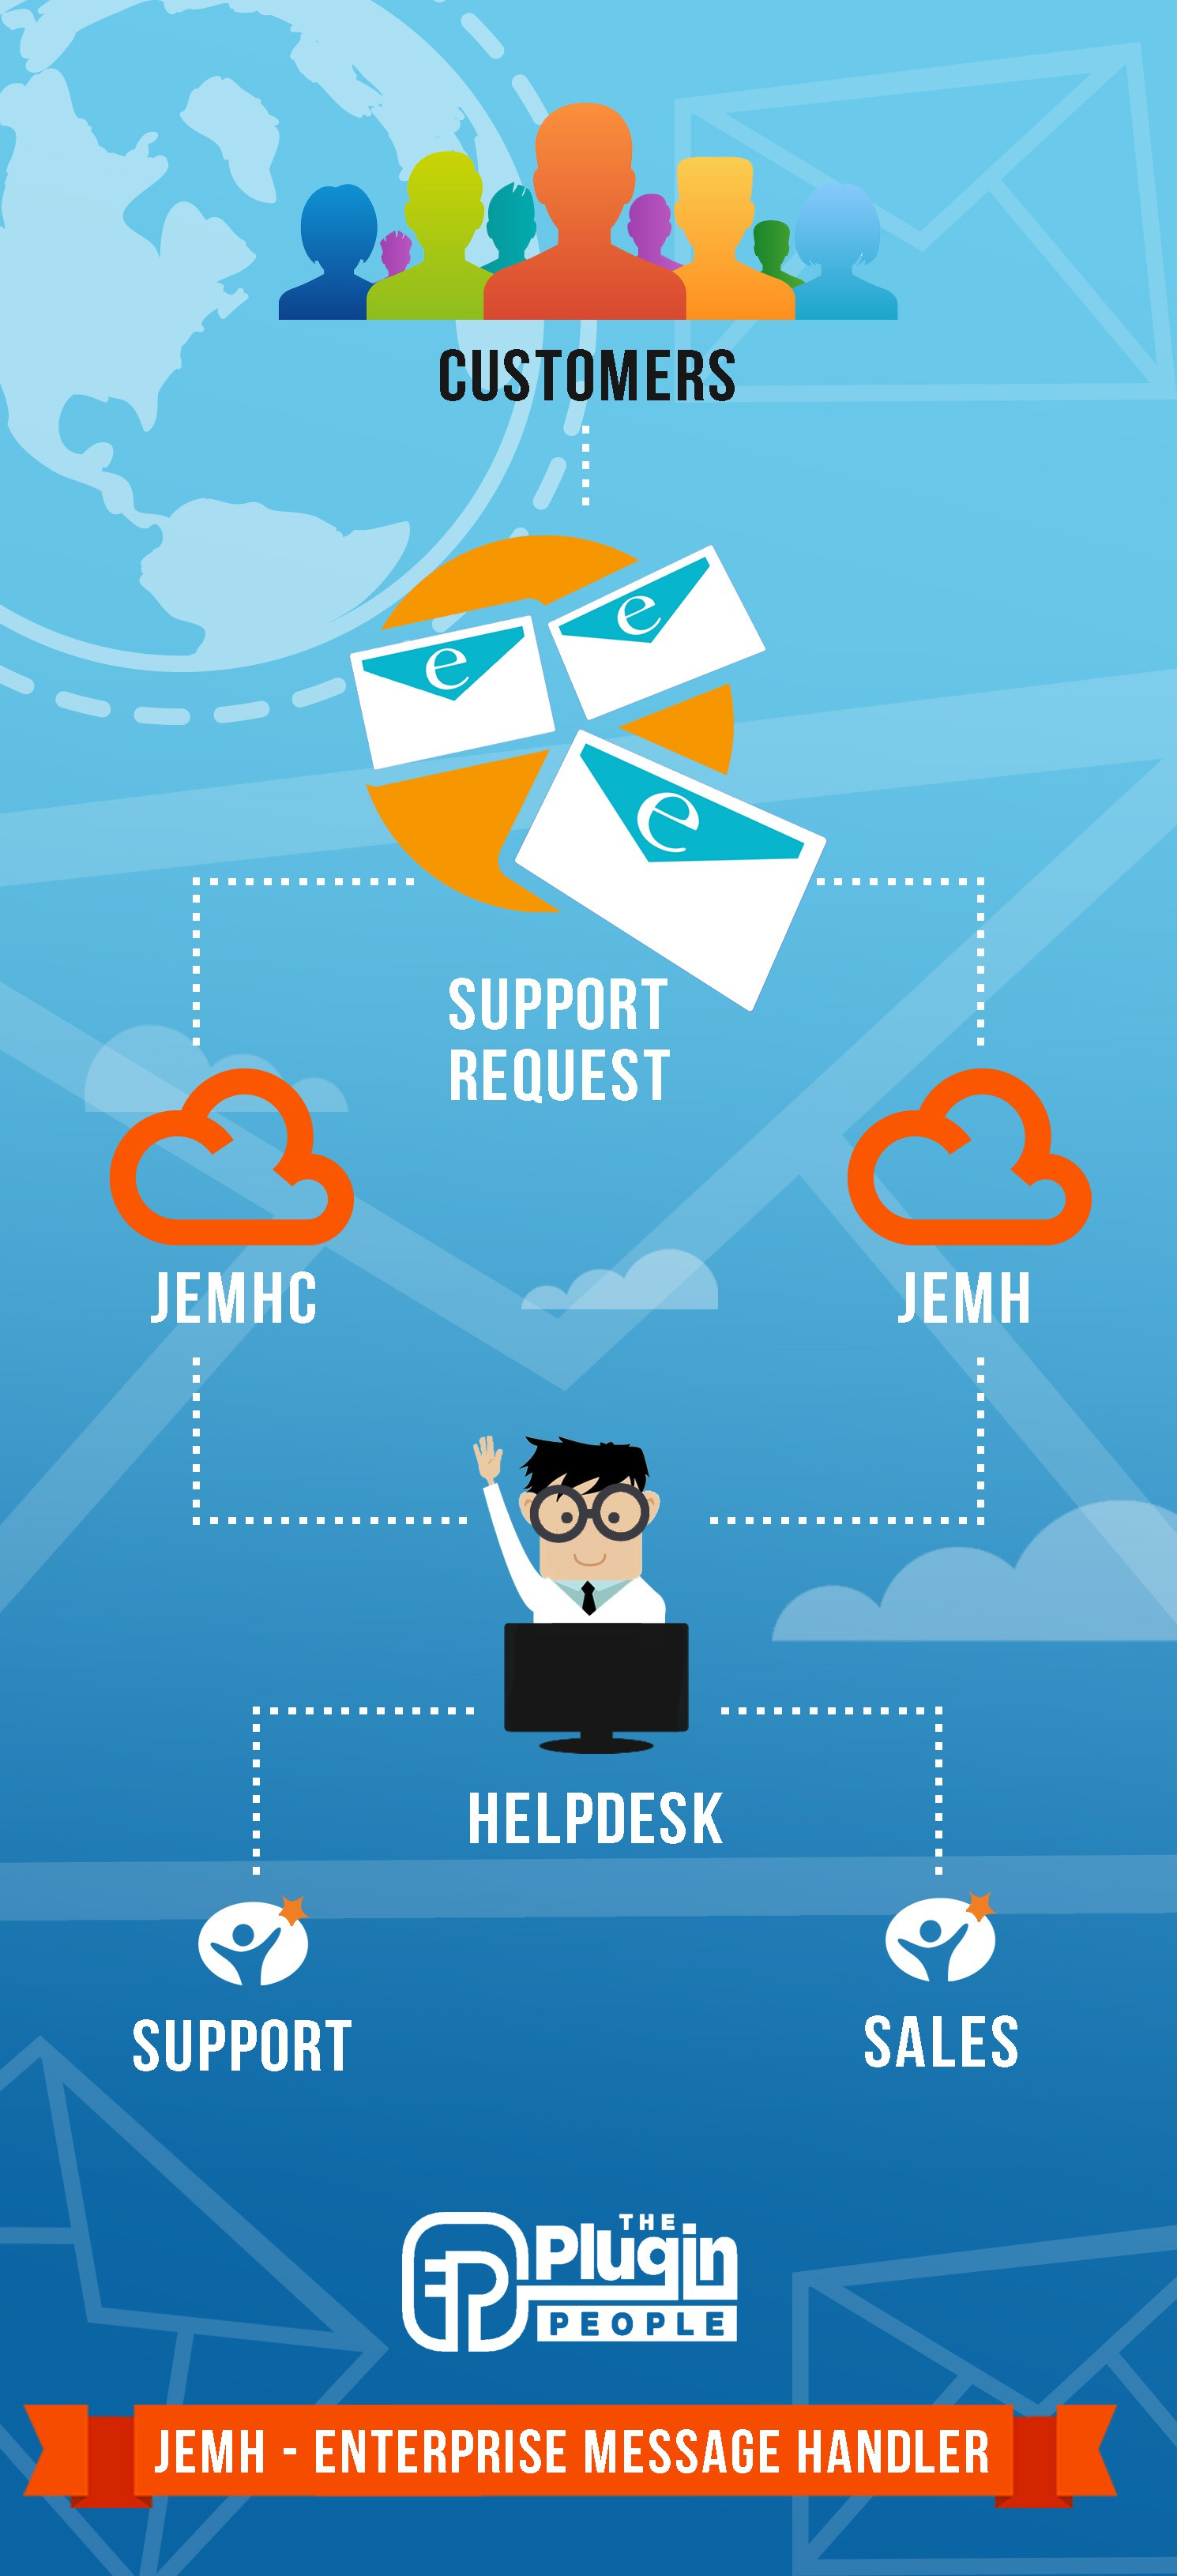 Create helpdesk via EMAIL 2mx1m concept backlit graphic in a couple of DAYS!